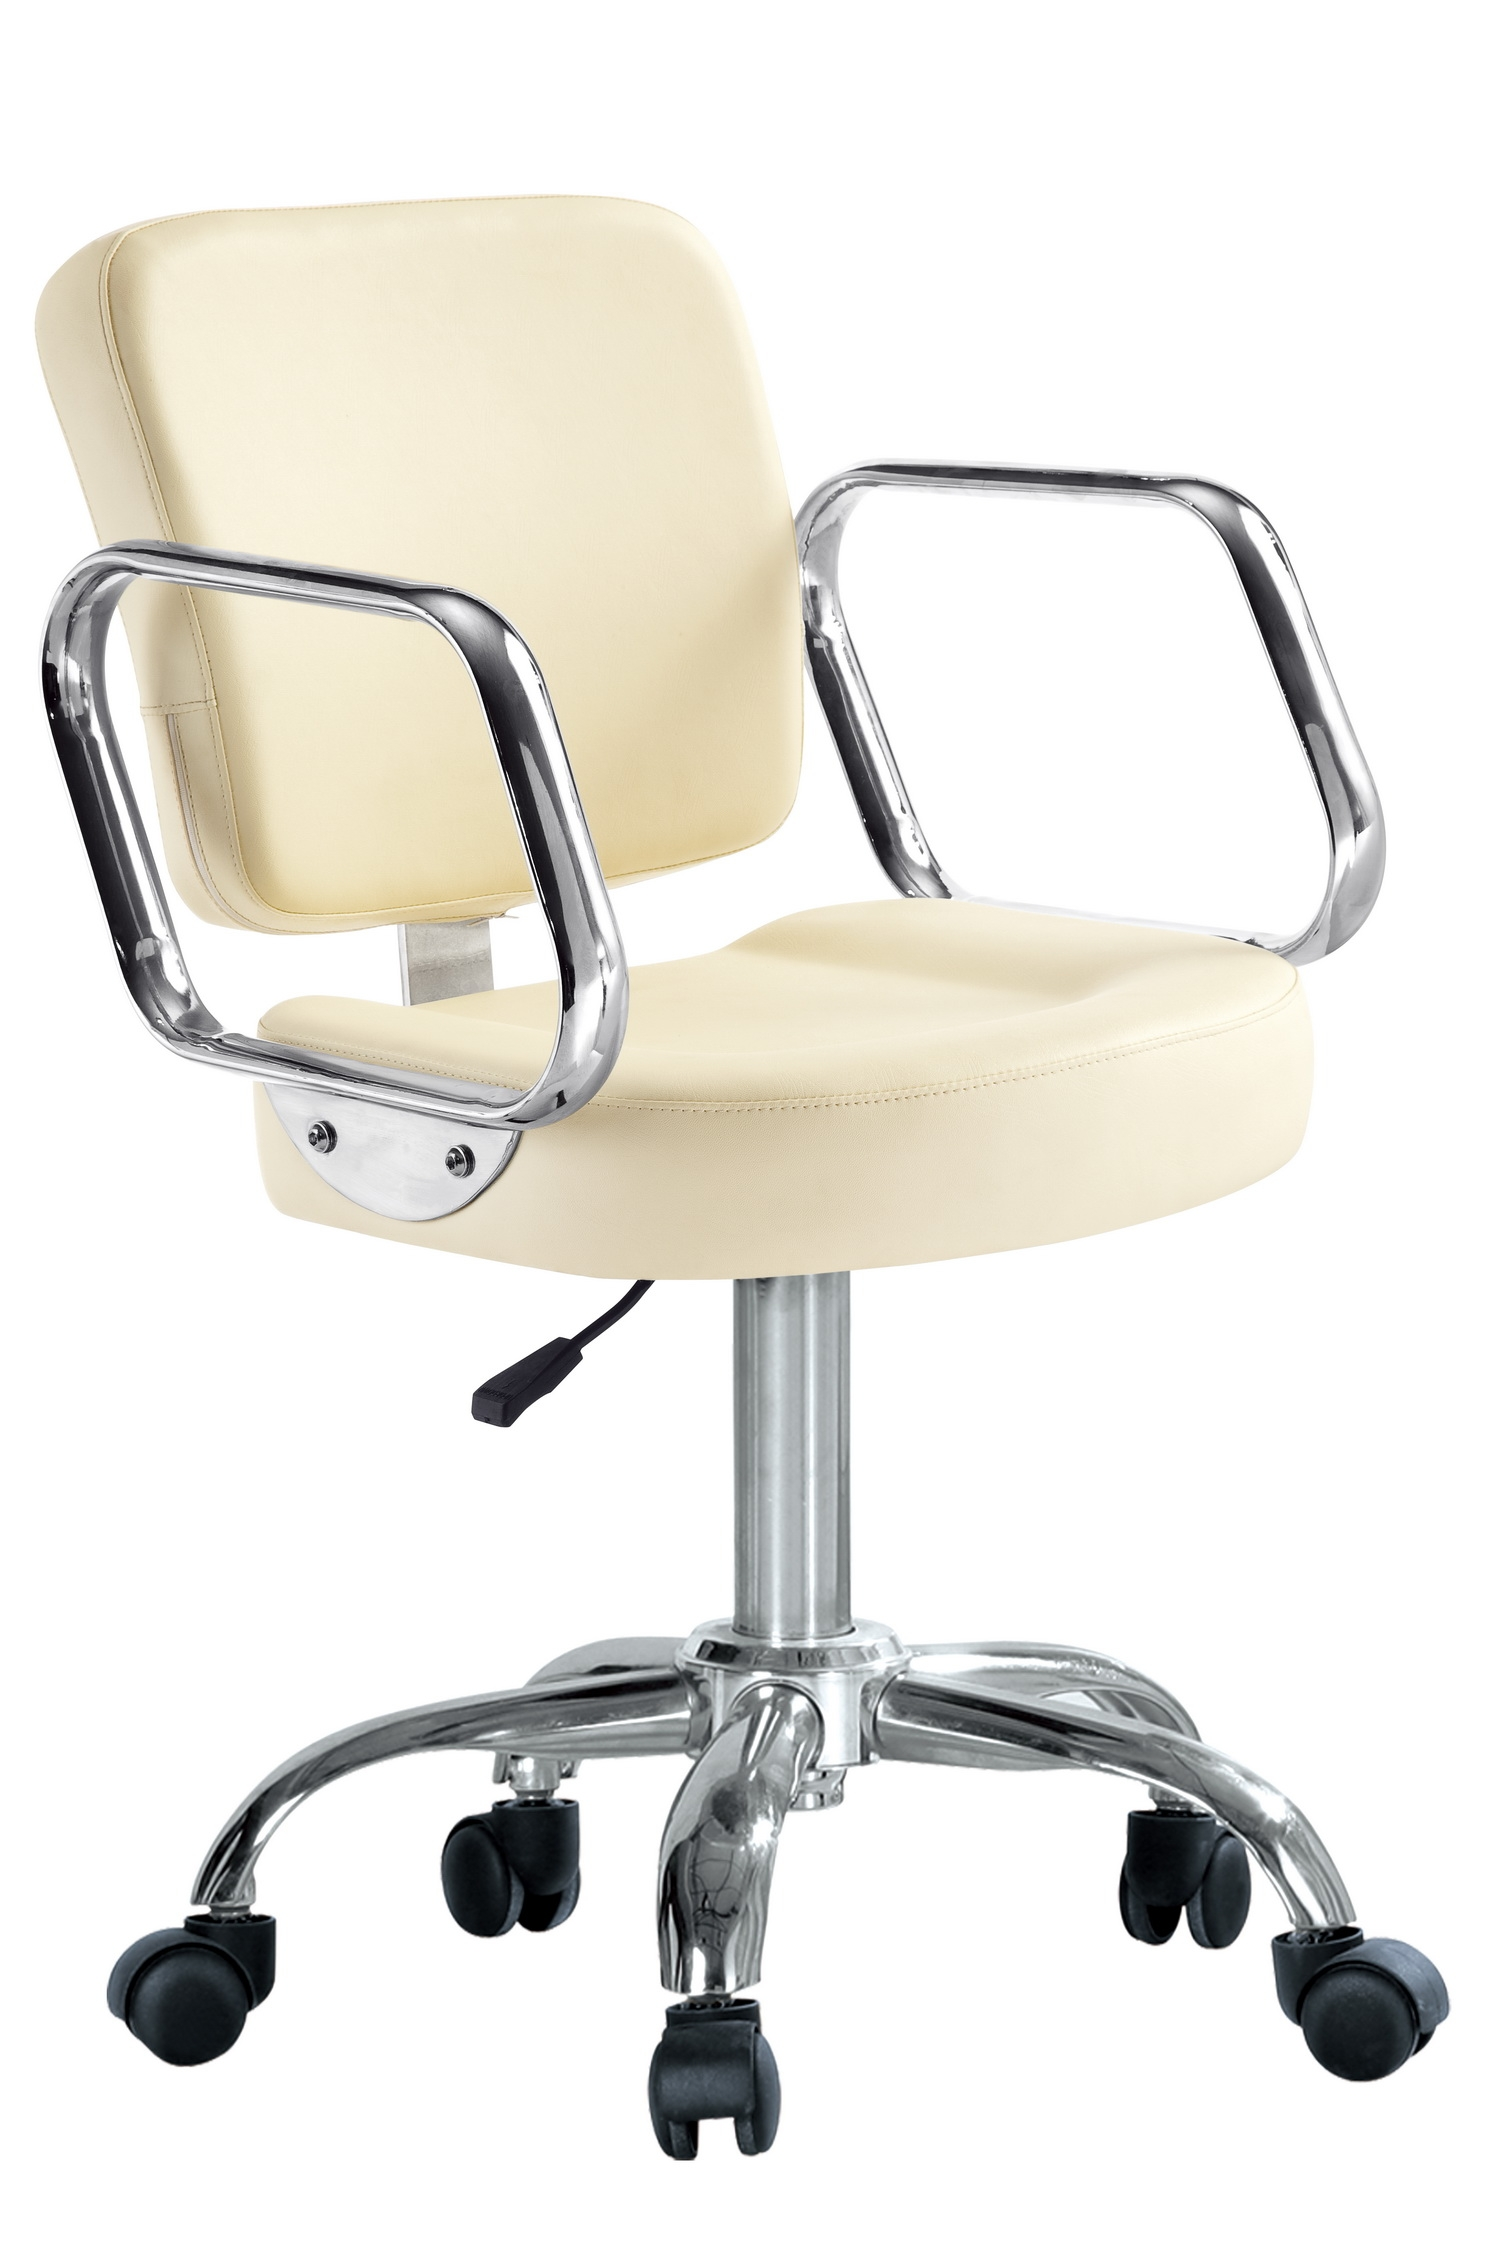 Pedicure Chair Manufacturer Massage Chair Technician